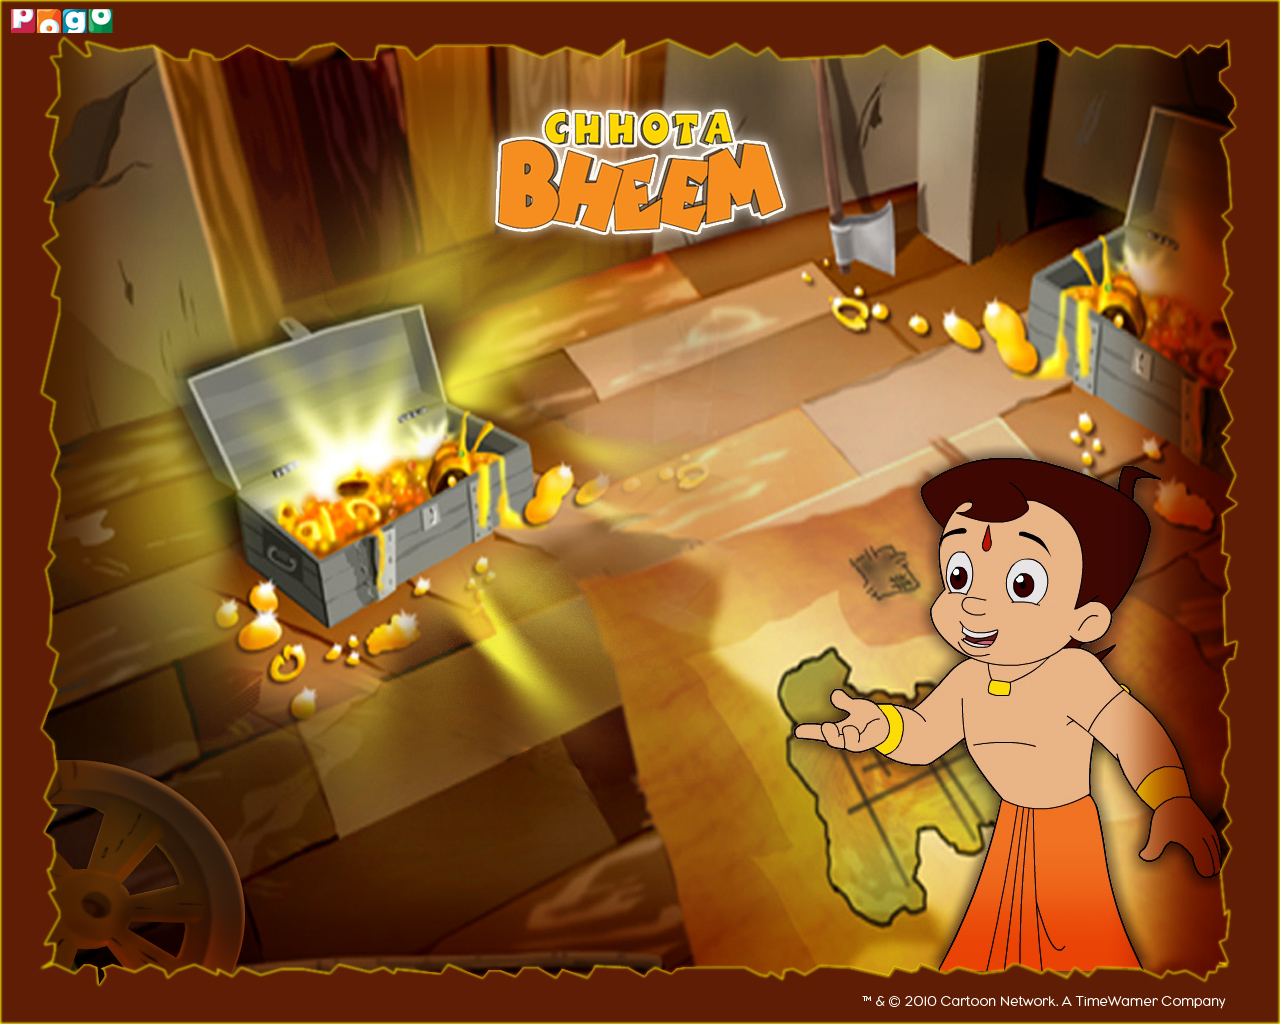 choota bheem images wall hd wallpaper and background photos 30154285